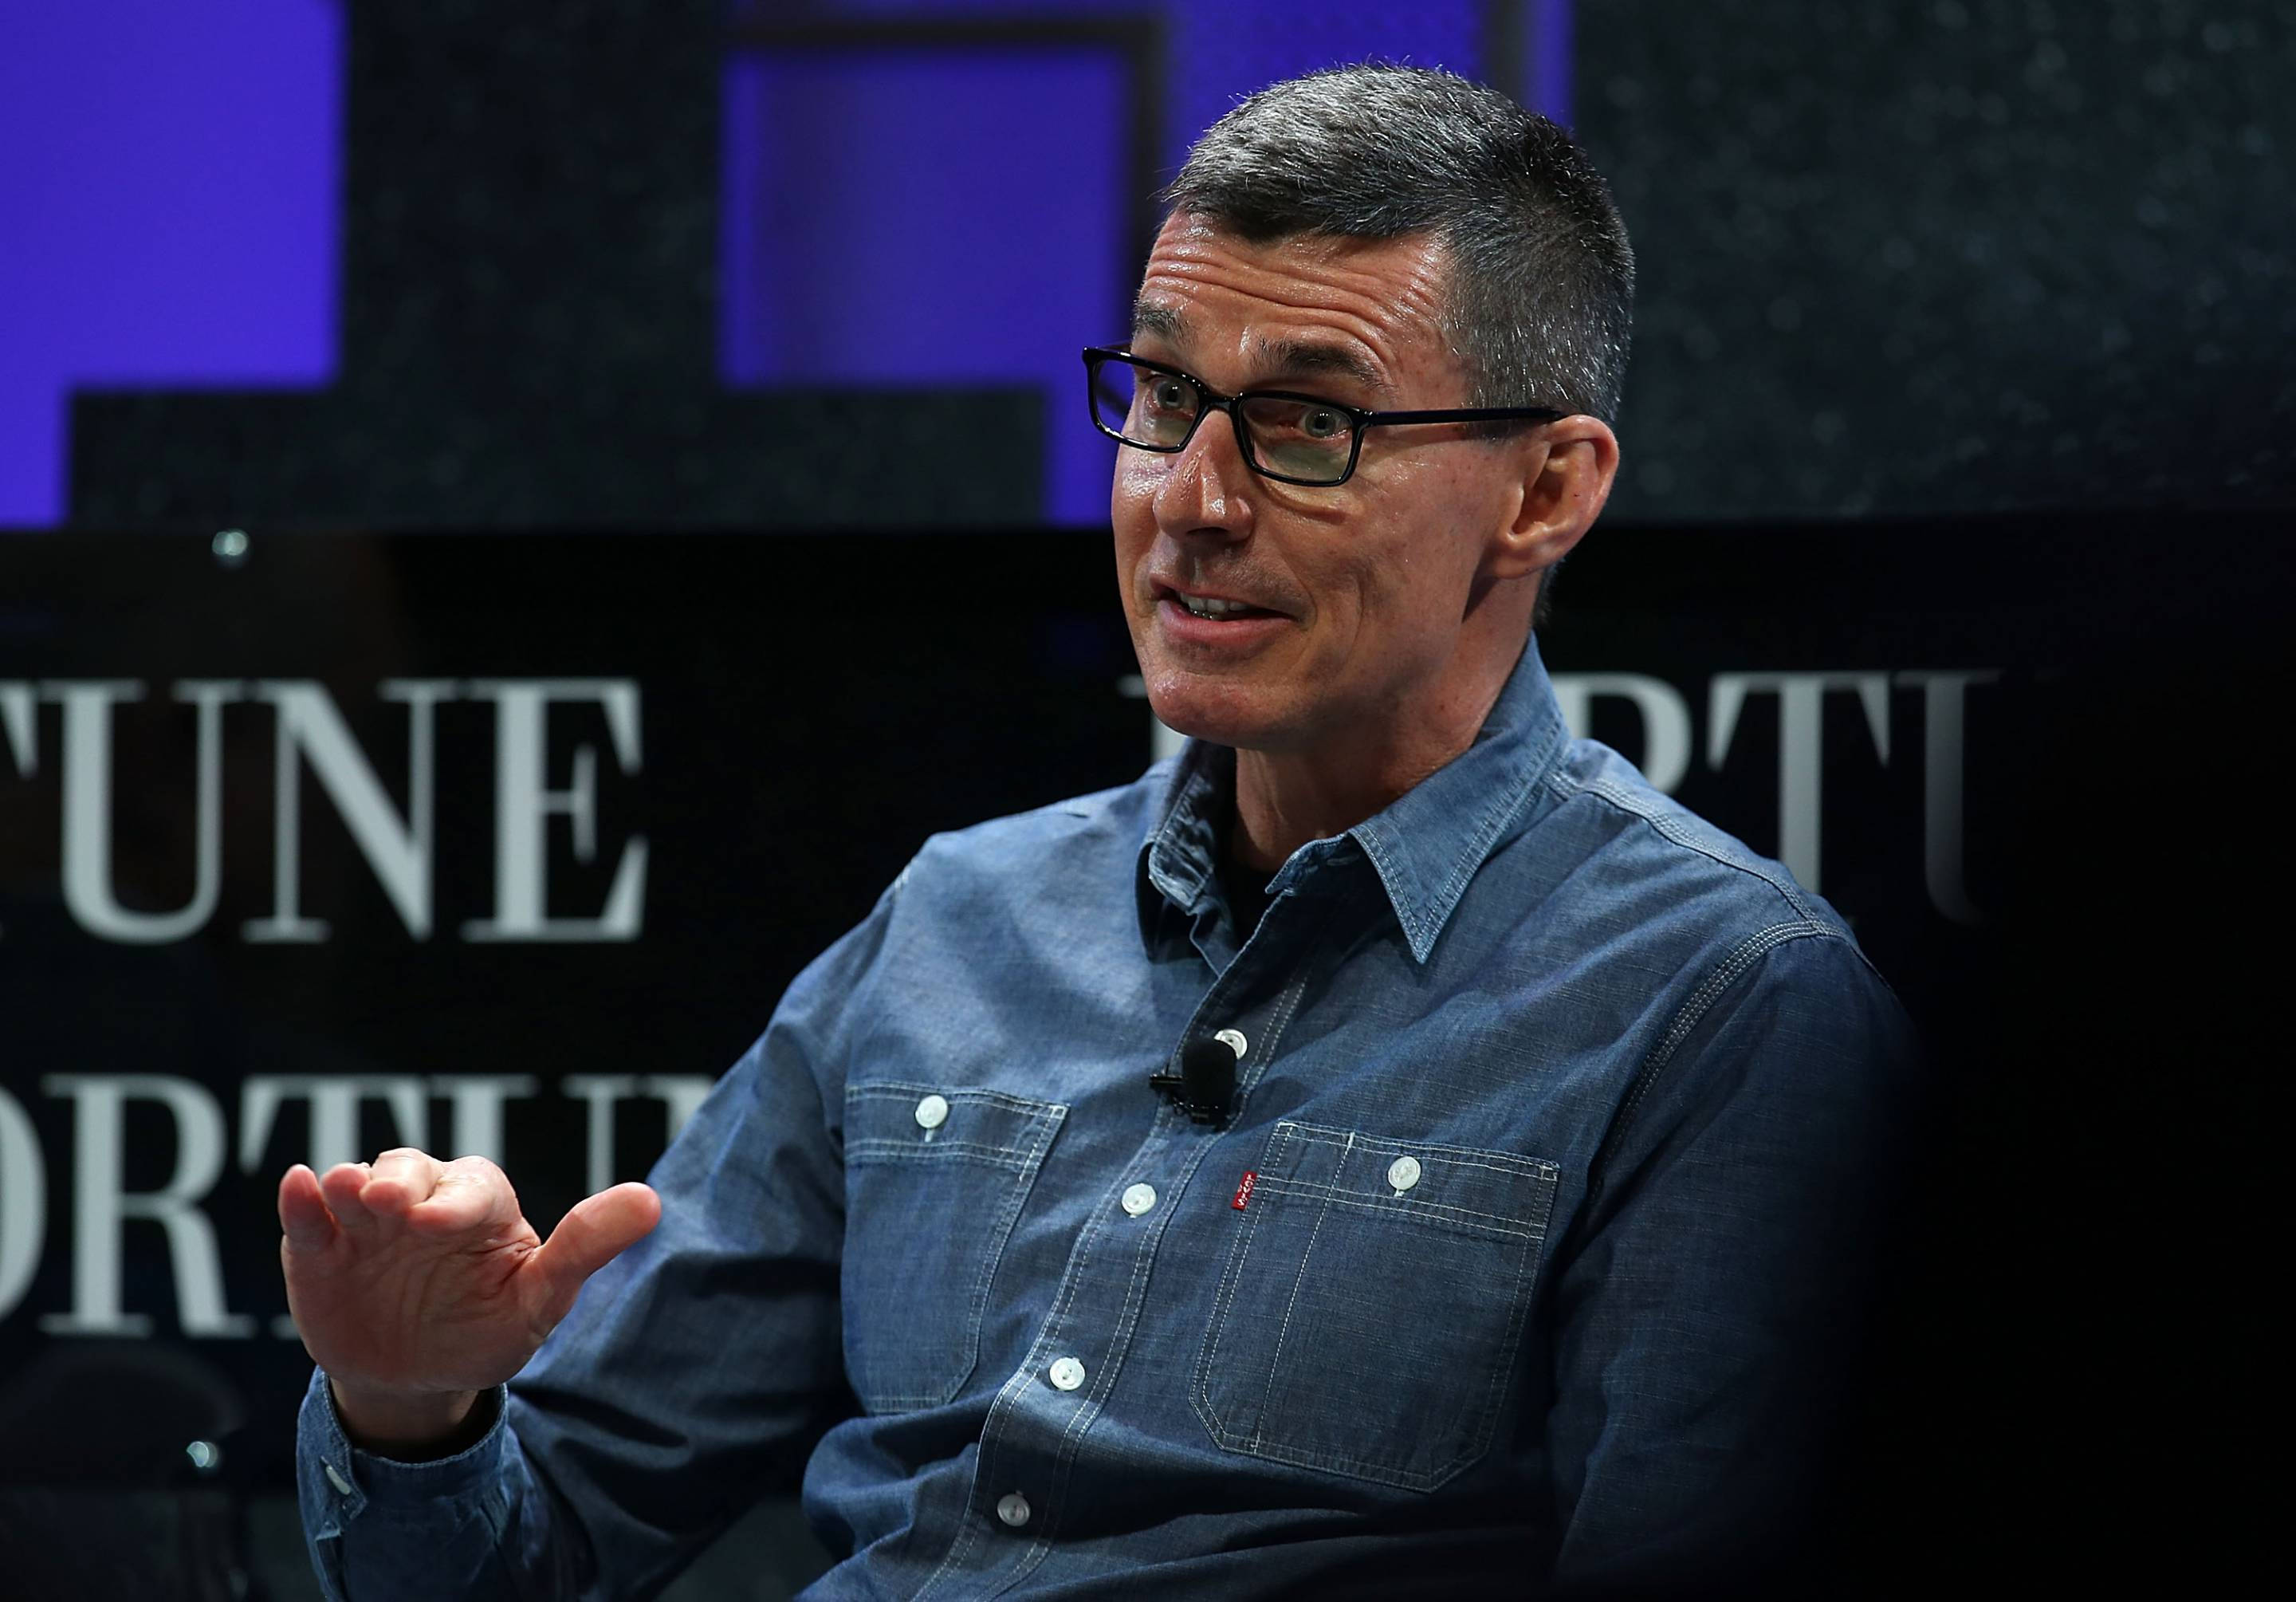 Levi Strauss & Co. president and CEO Chip Bergh speaks during the Fortune Global Forum on November 3, 2015 in San Francisco.